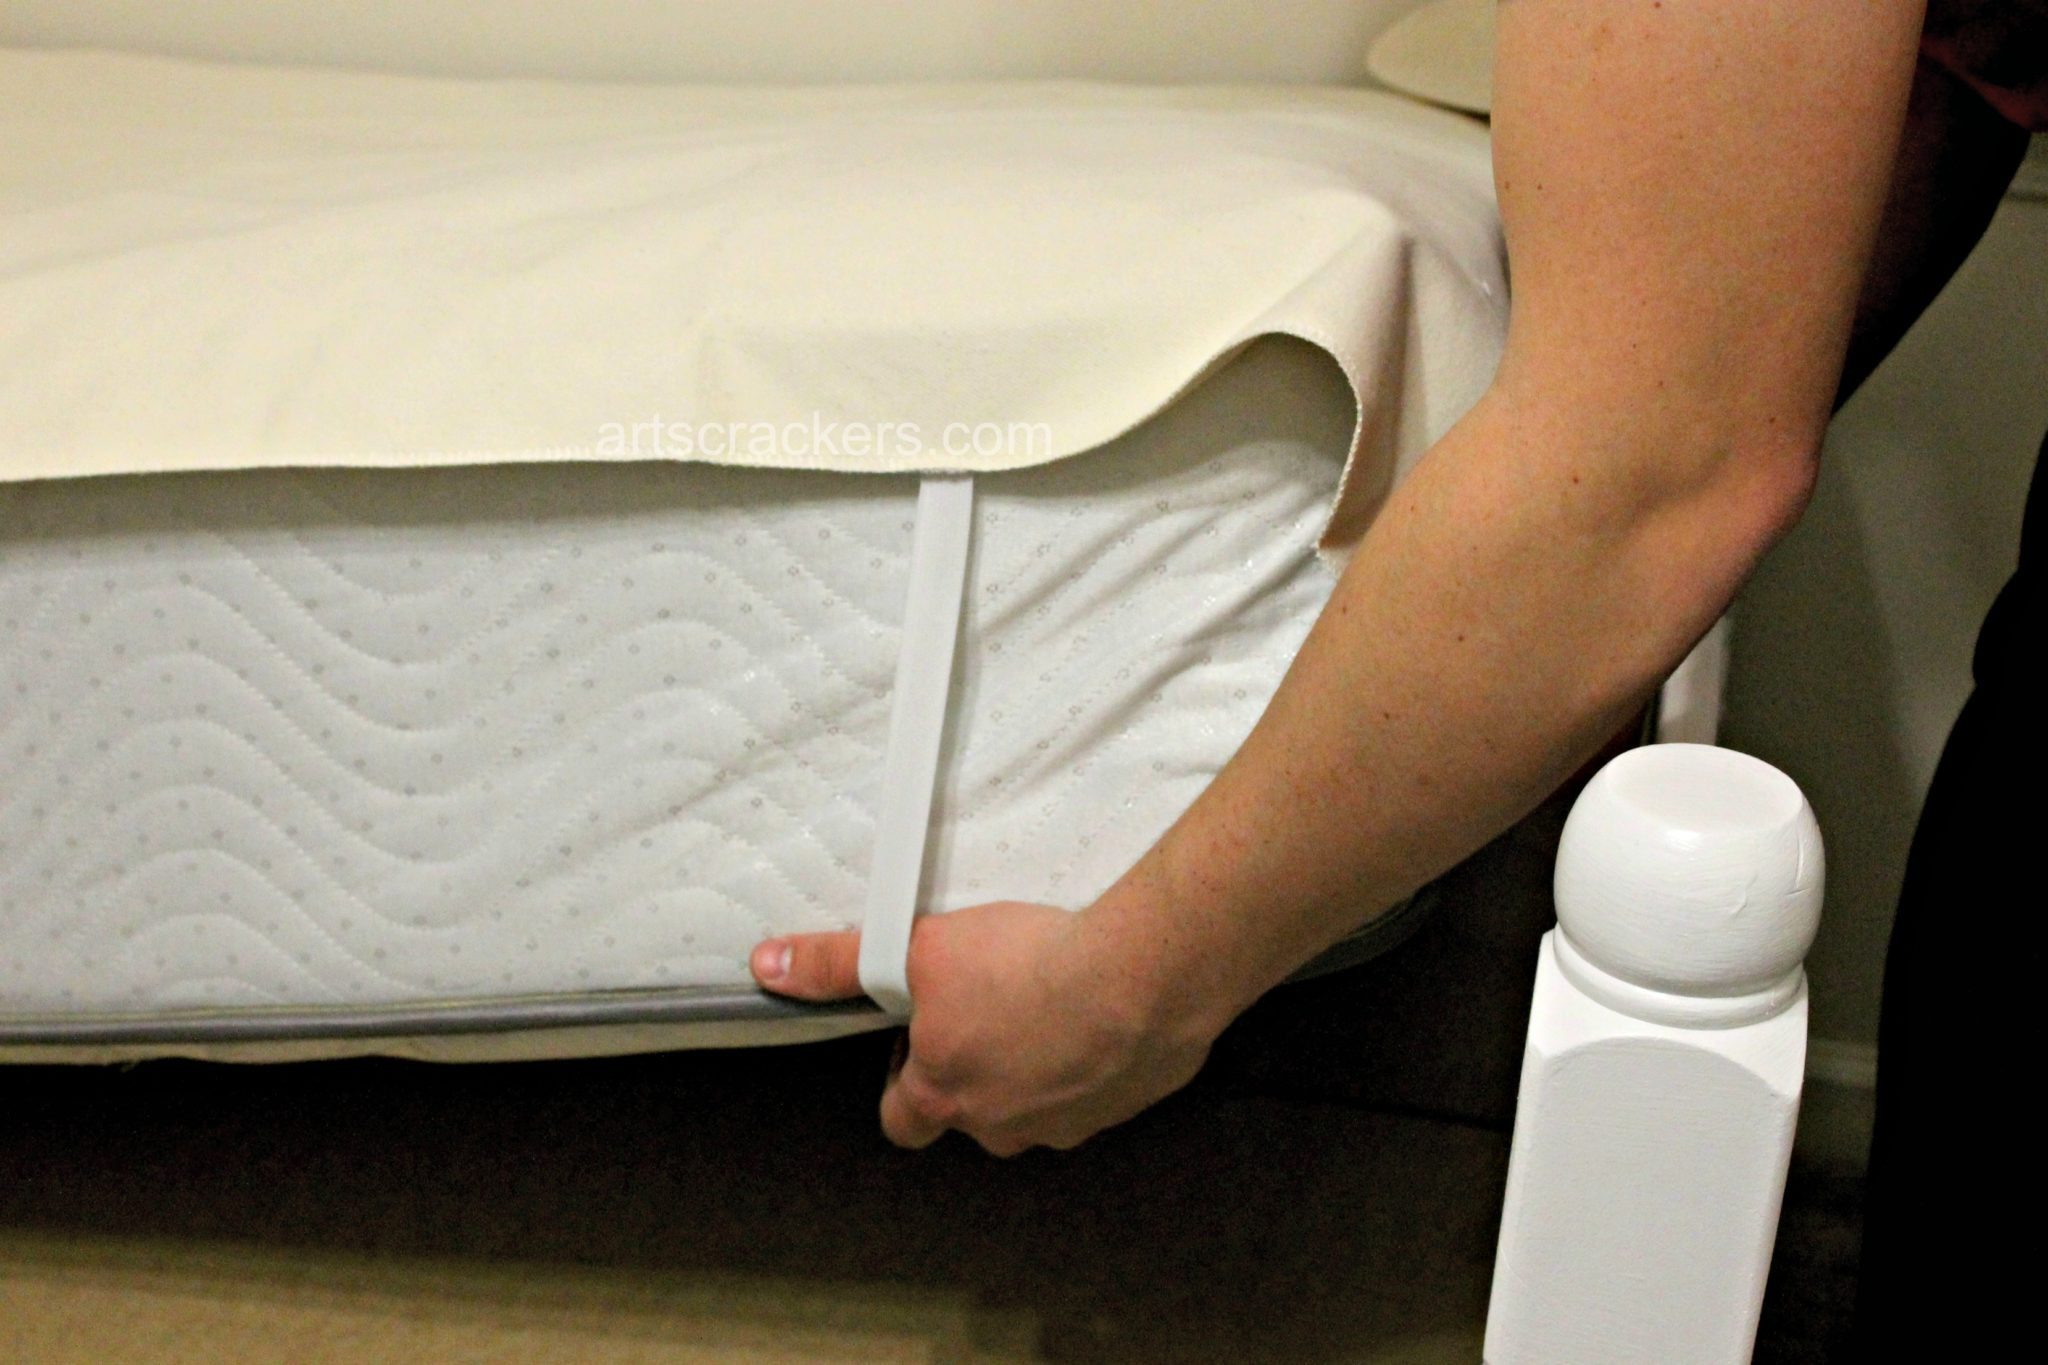 Naturepedic Organic Waterproof Mattress Protector Pad. Click the picture to read the review.